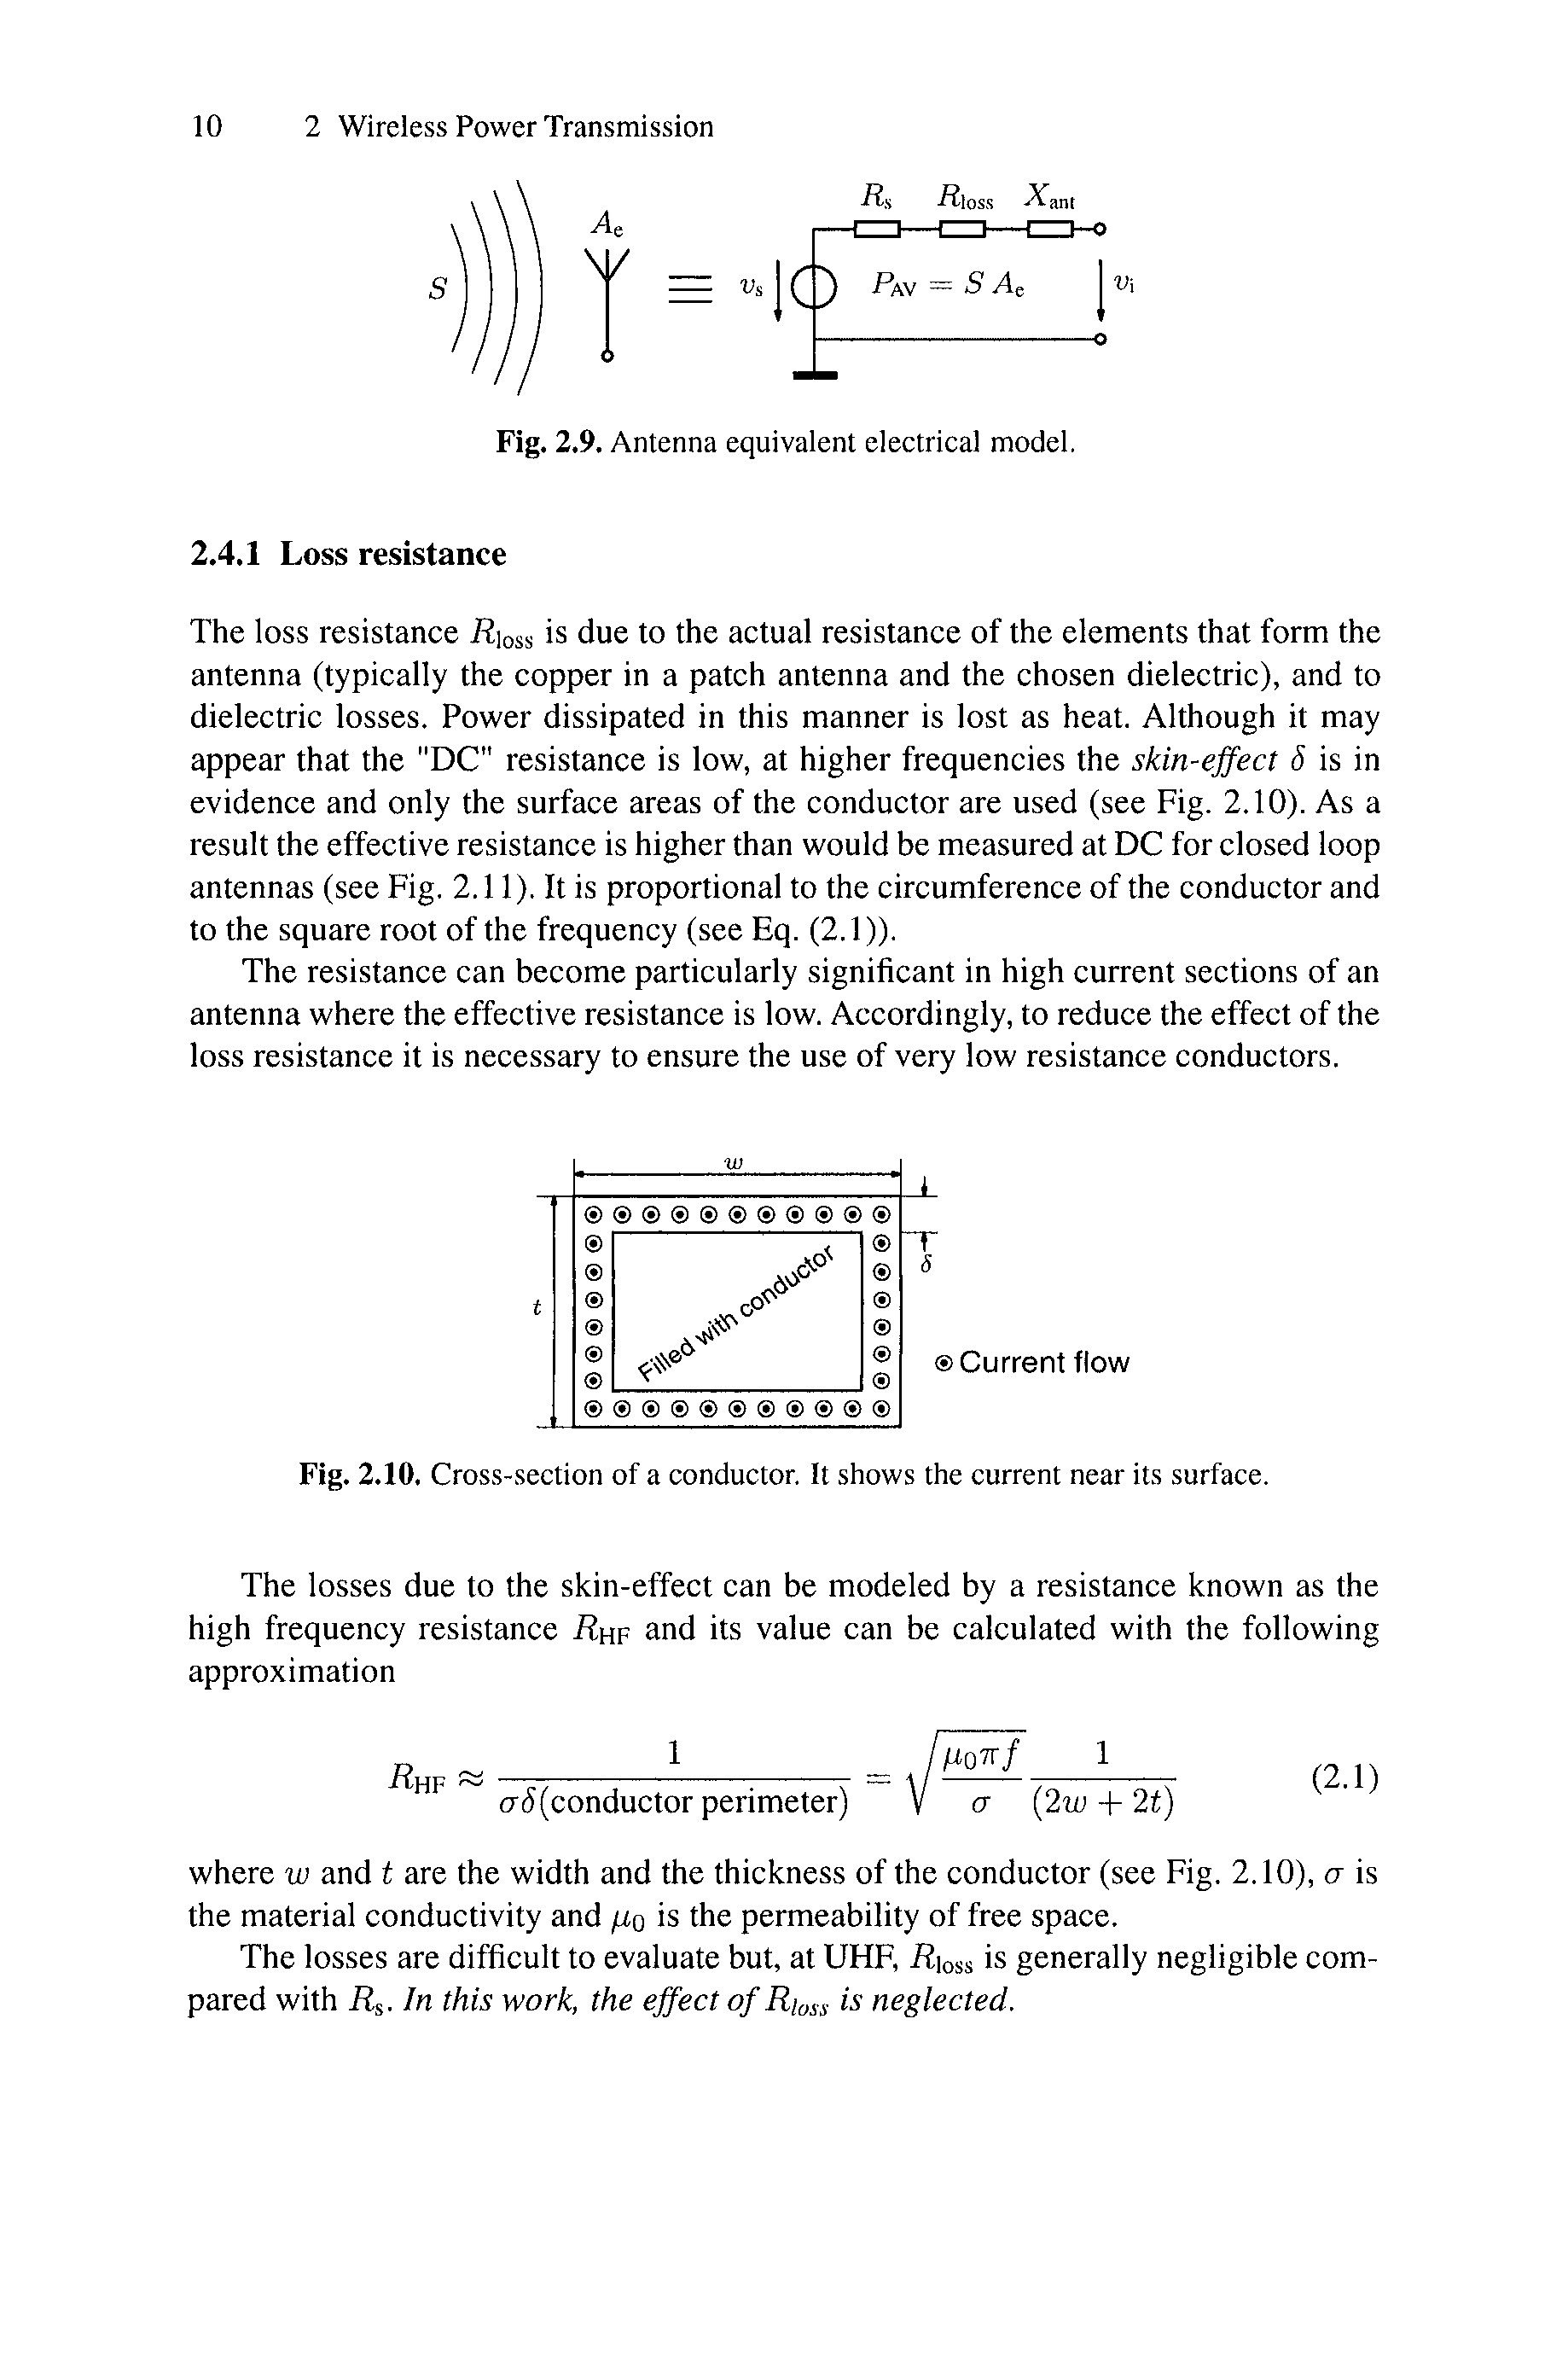 design and optimization of passive uhf rfid systems curty jari pascal declercq michel dehollain catherine joehl norbert